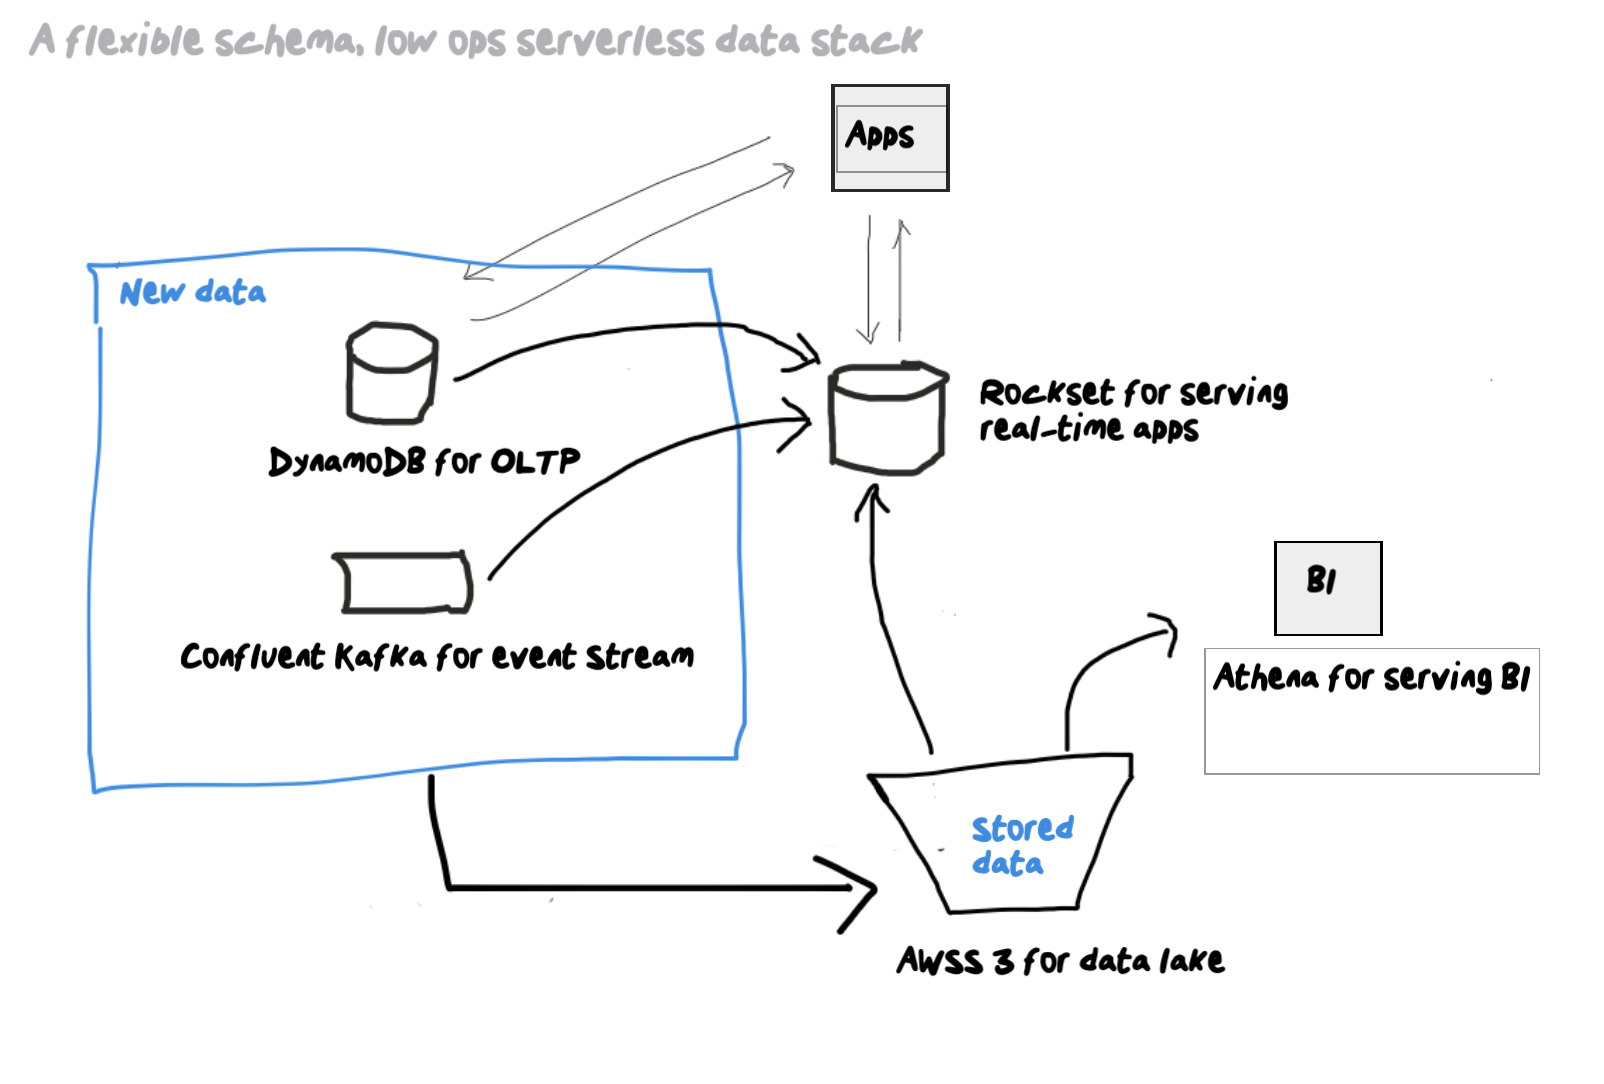 serverless-data-stack